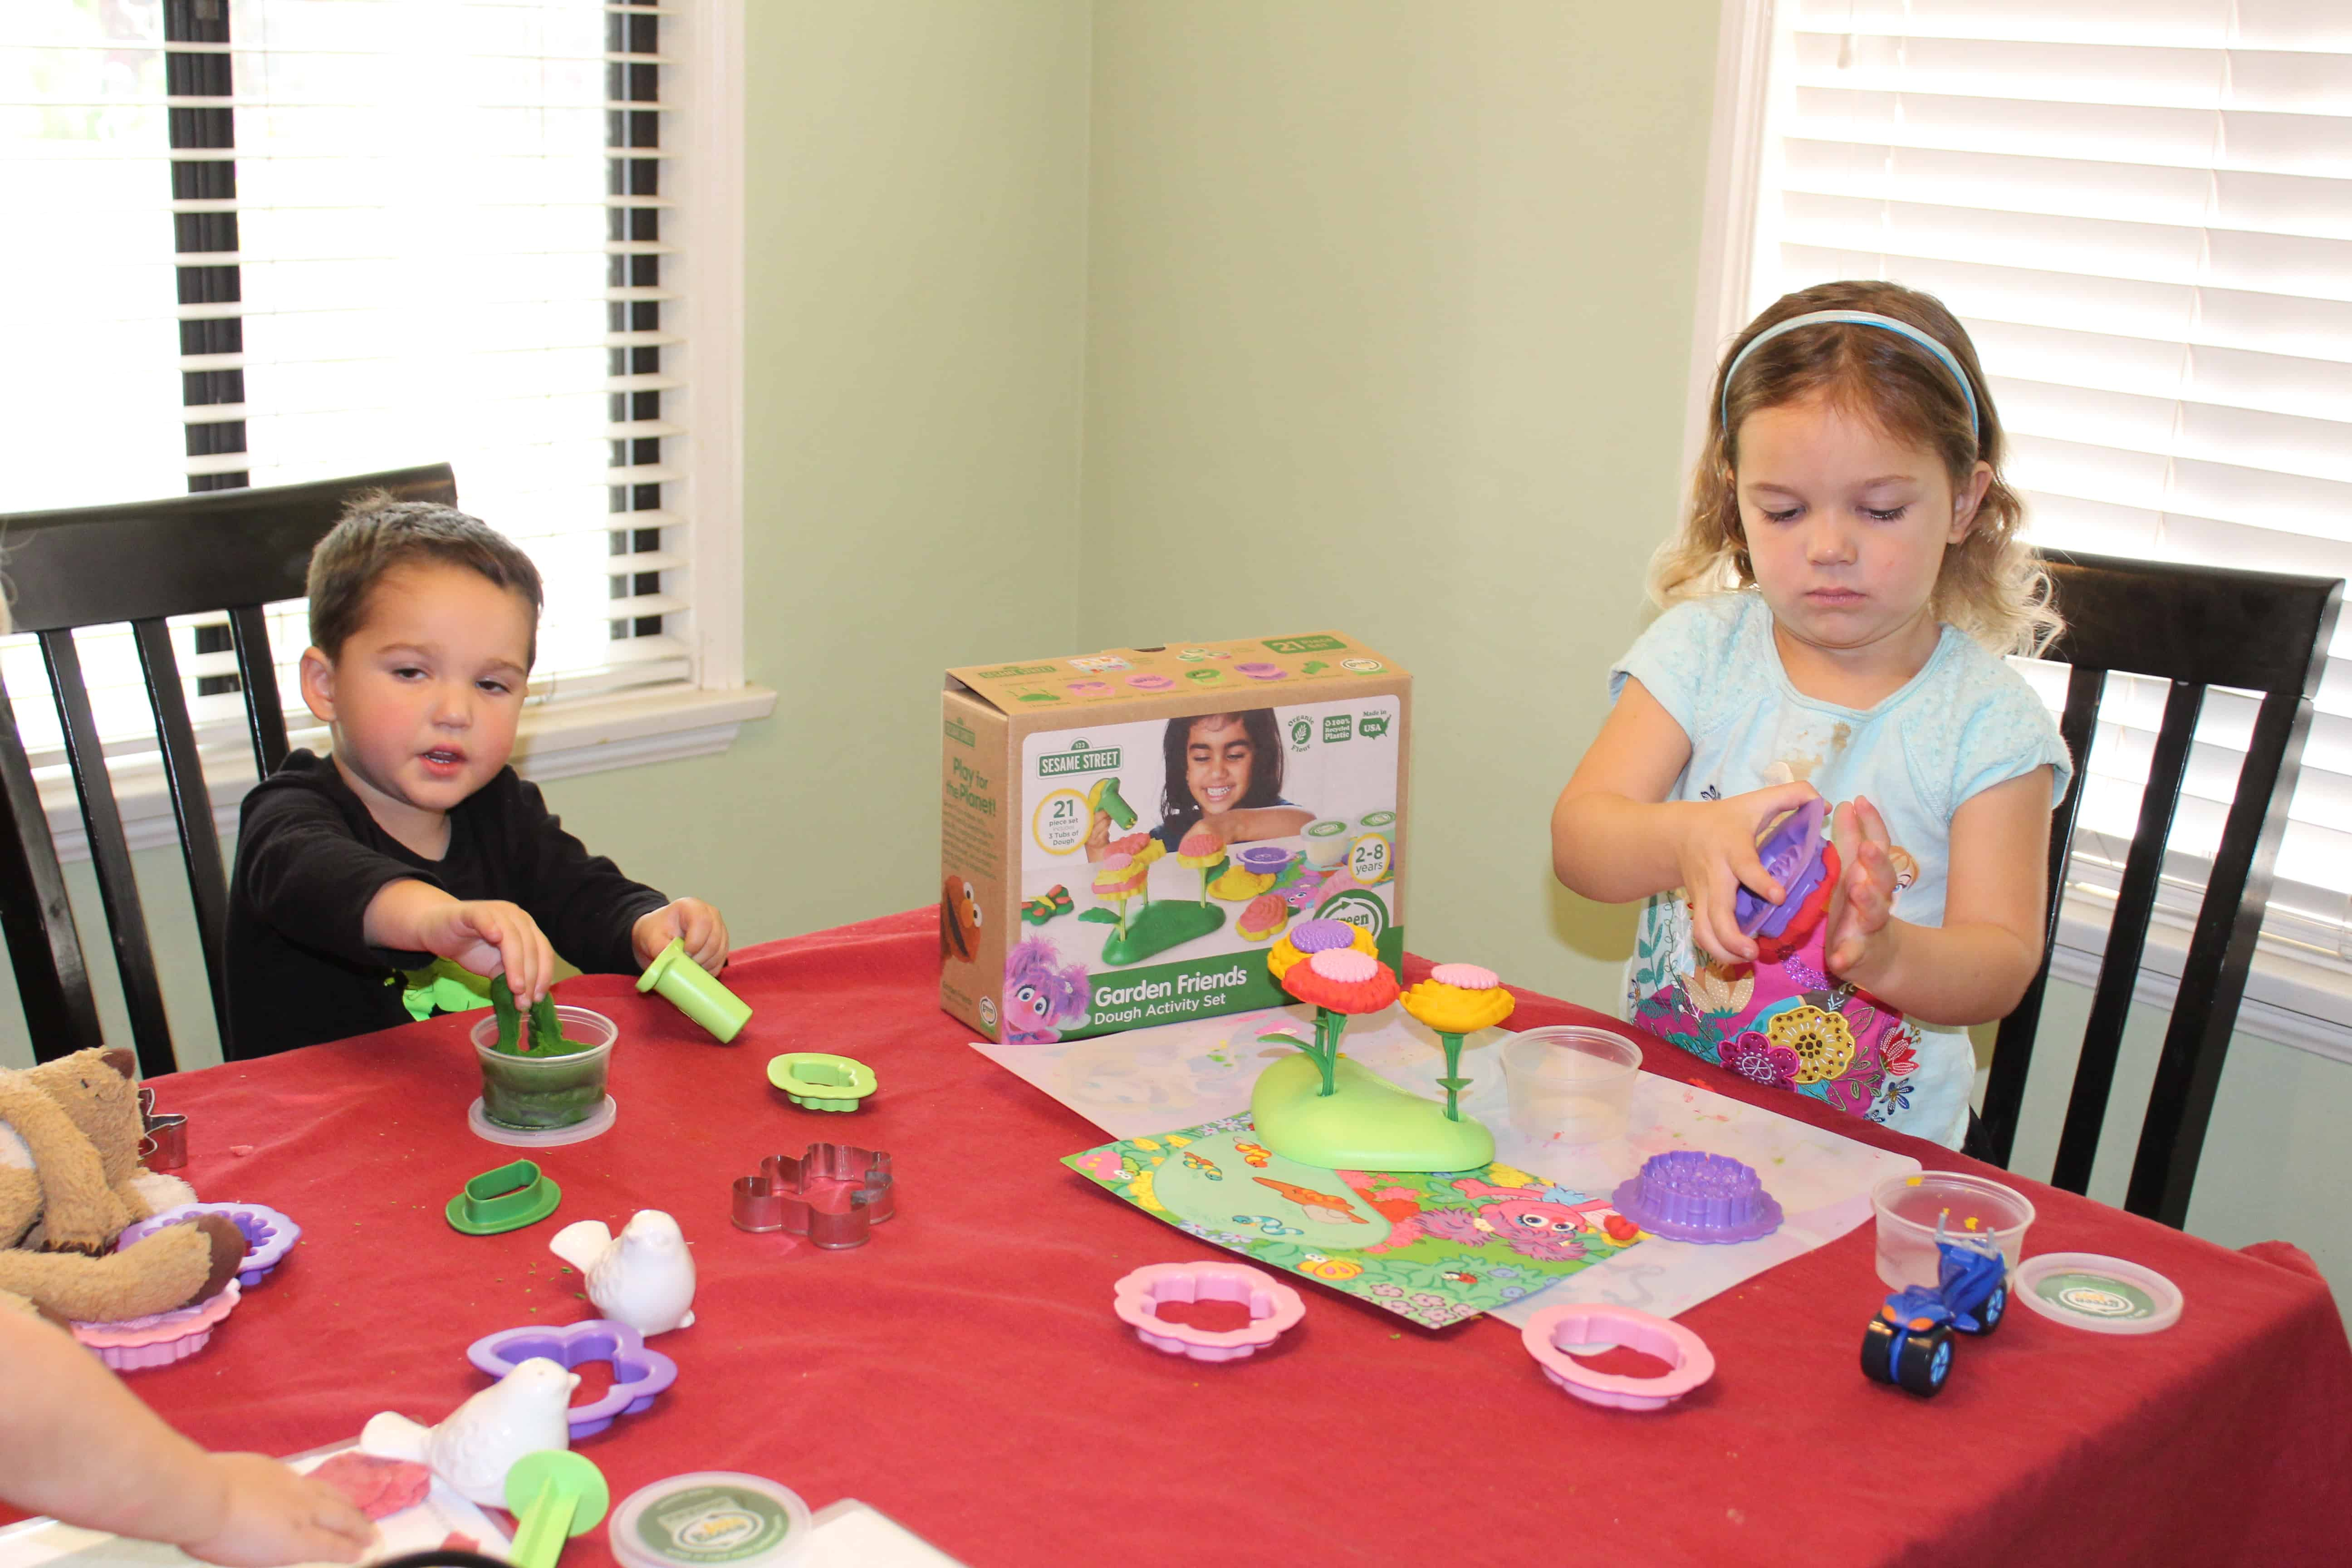 Two toddlers seated at a table playing quietly with play dough